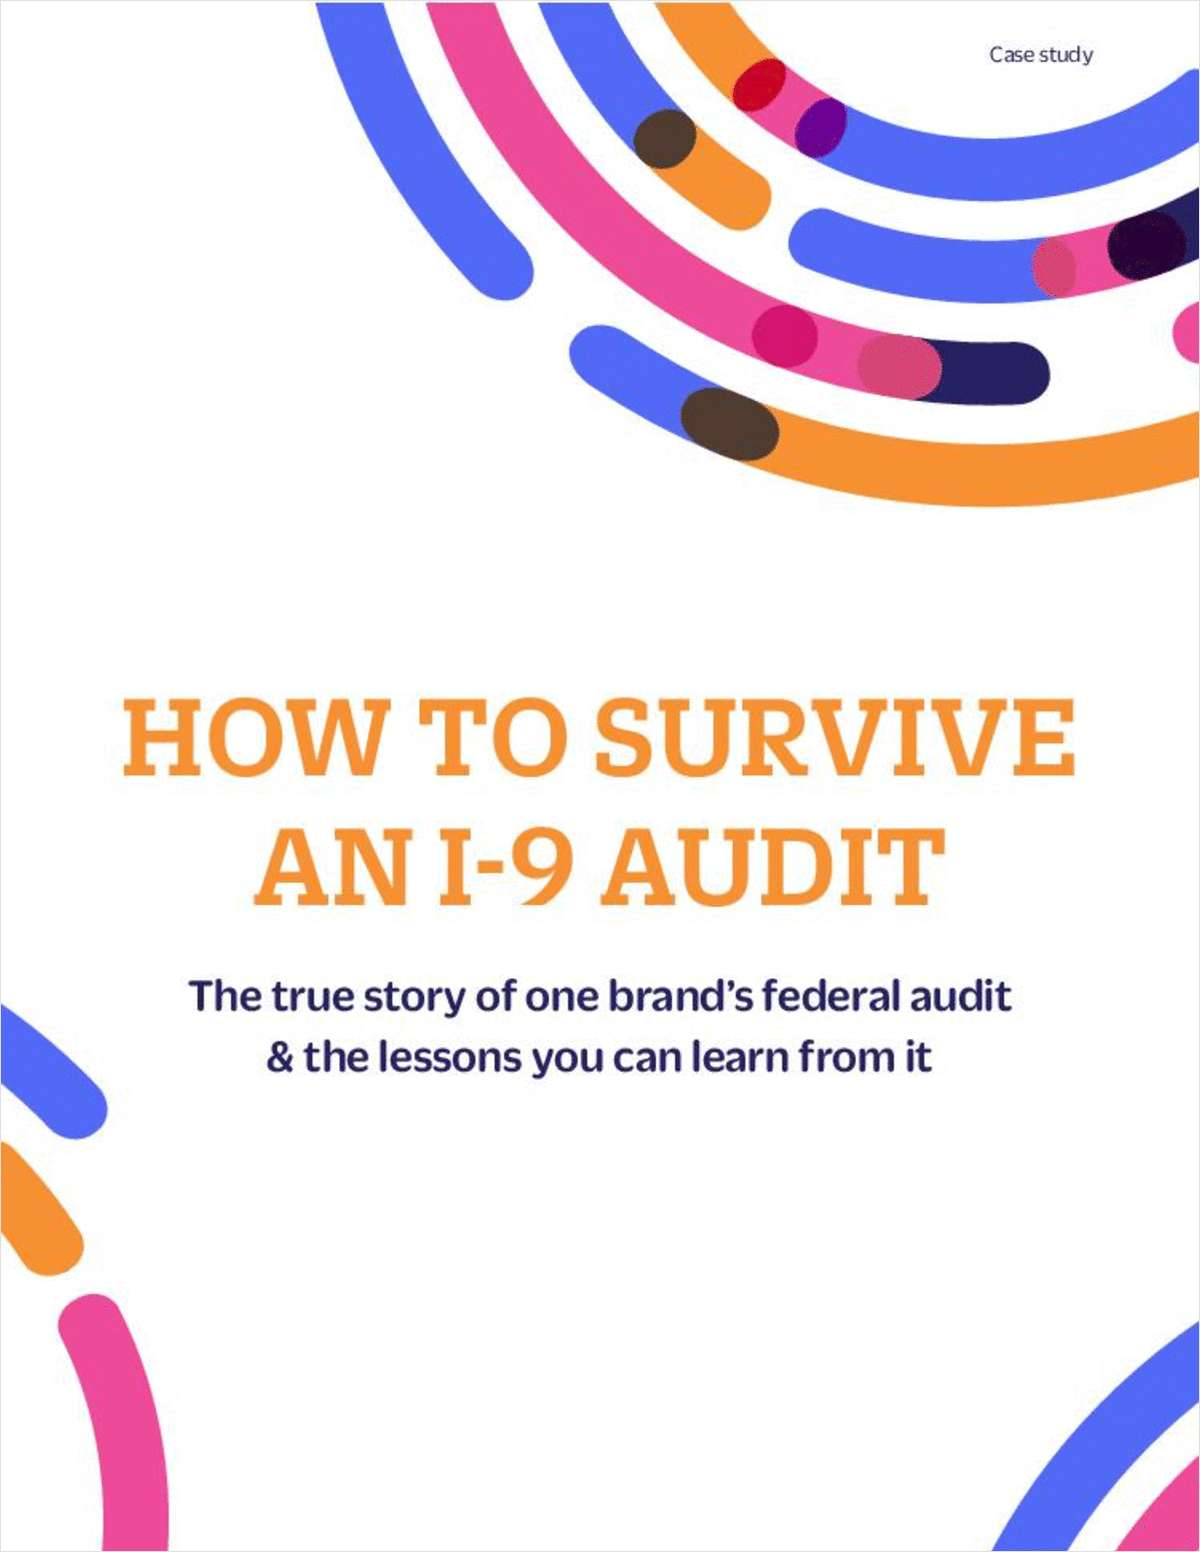 How to Survive an I-9 Audit